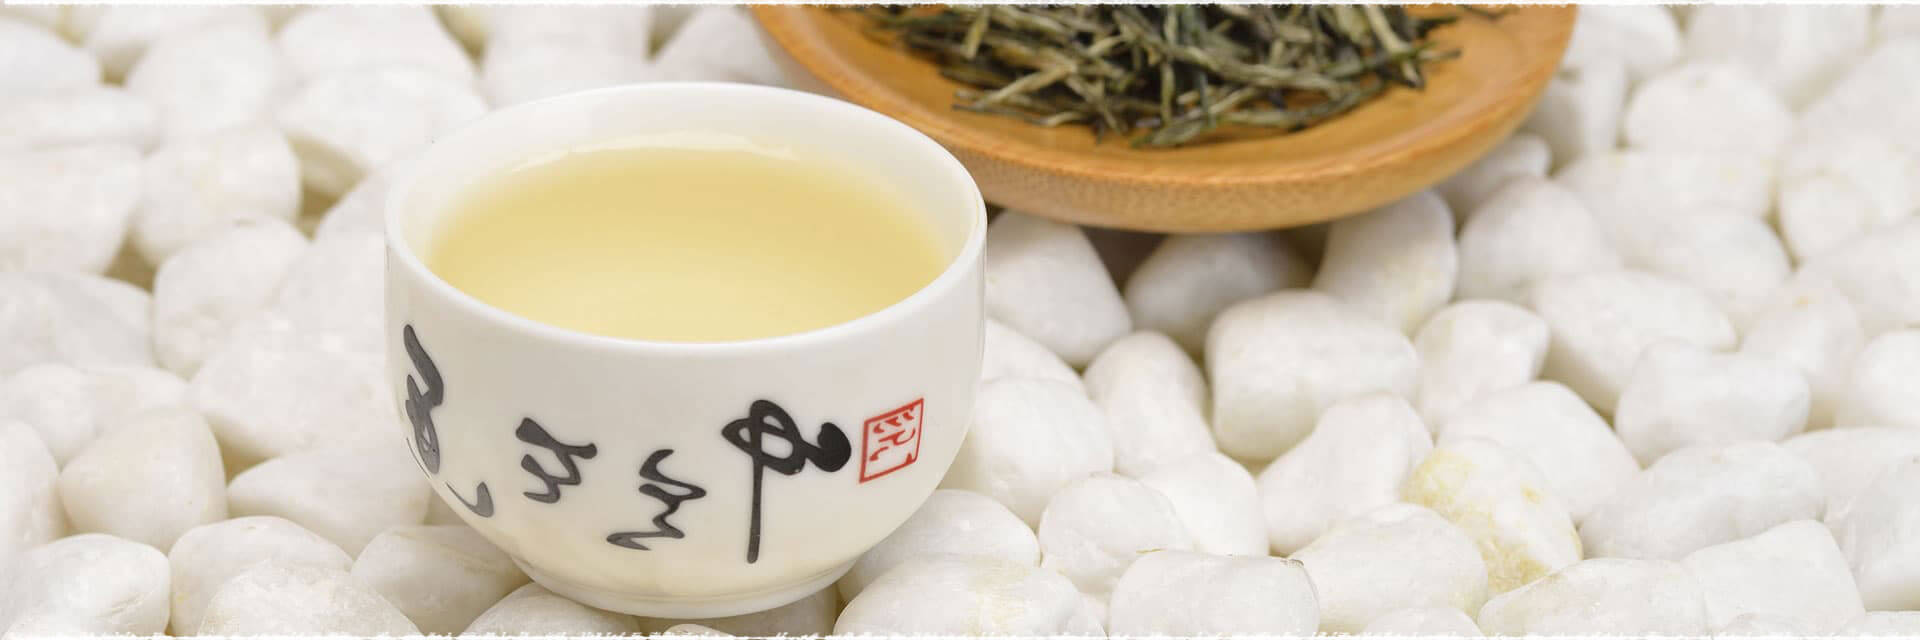 Xin Yang Mao Jian Chinese Tea Information